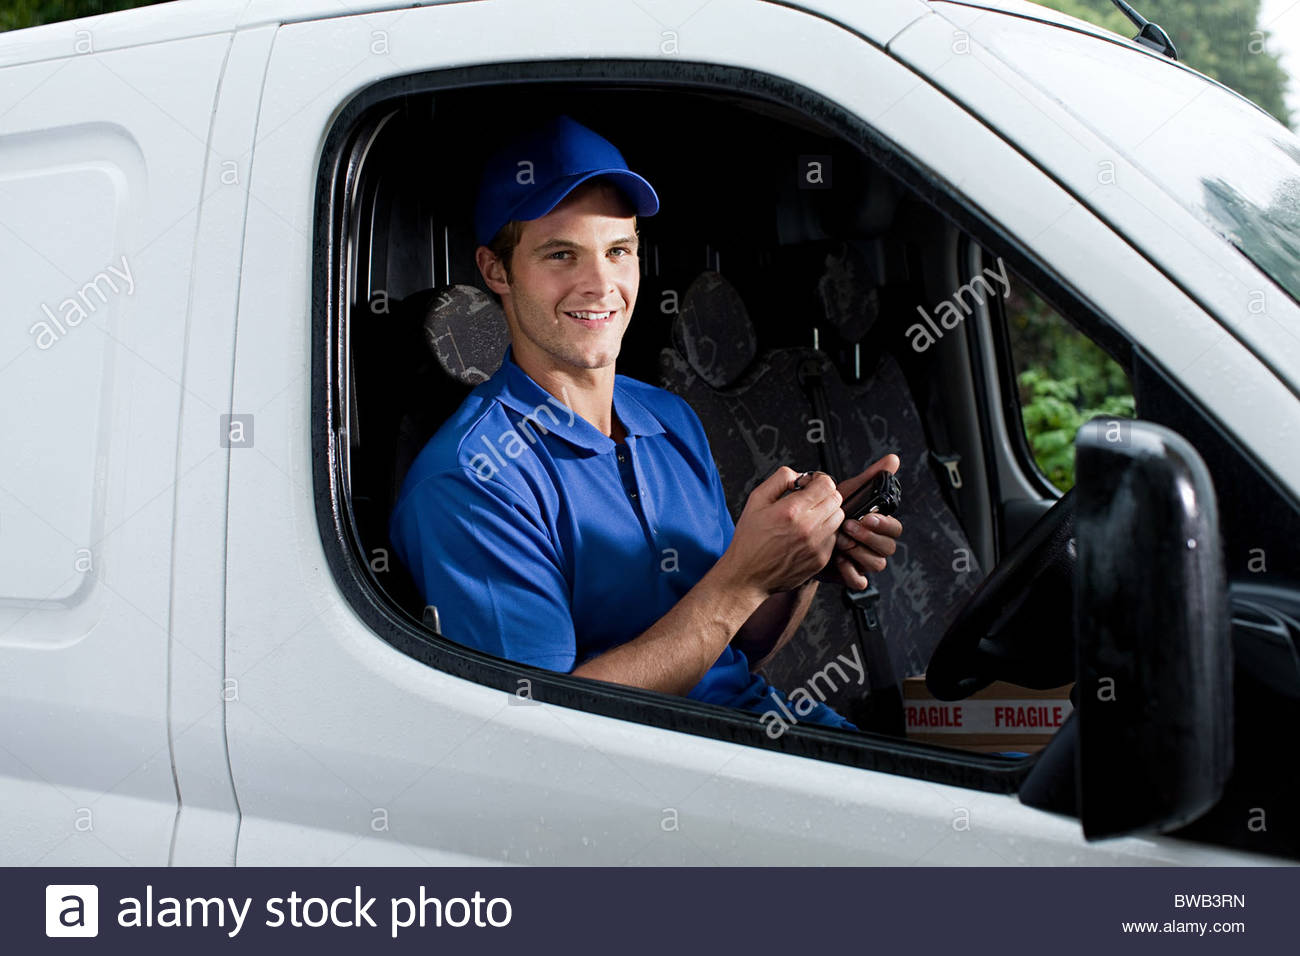 Delivery man in van with handheld computer - Stock Image